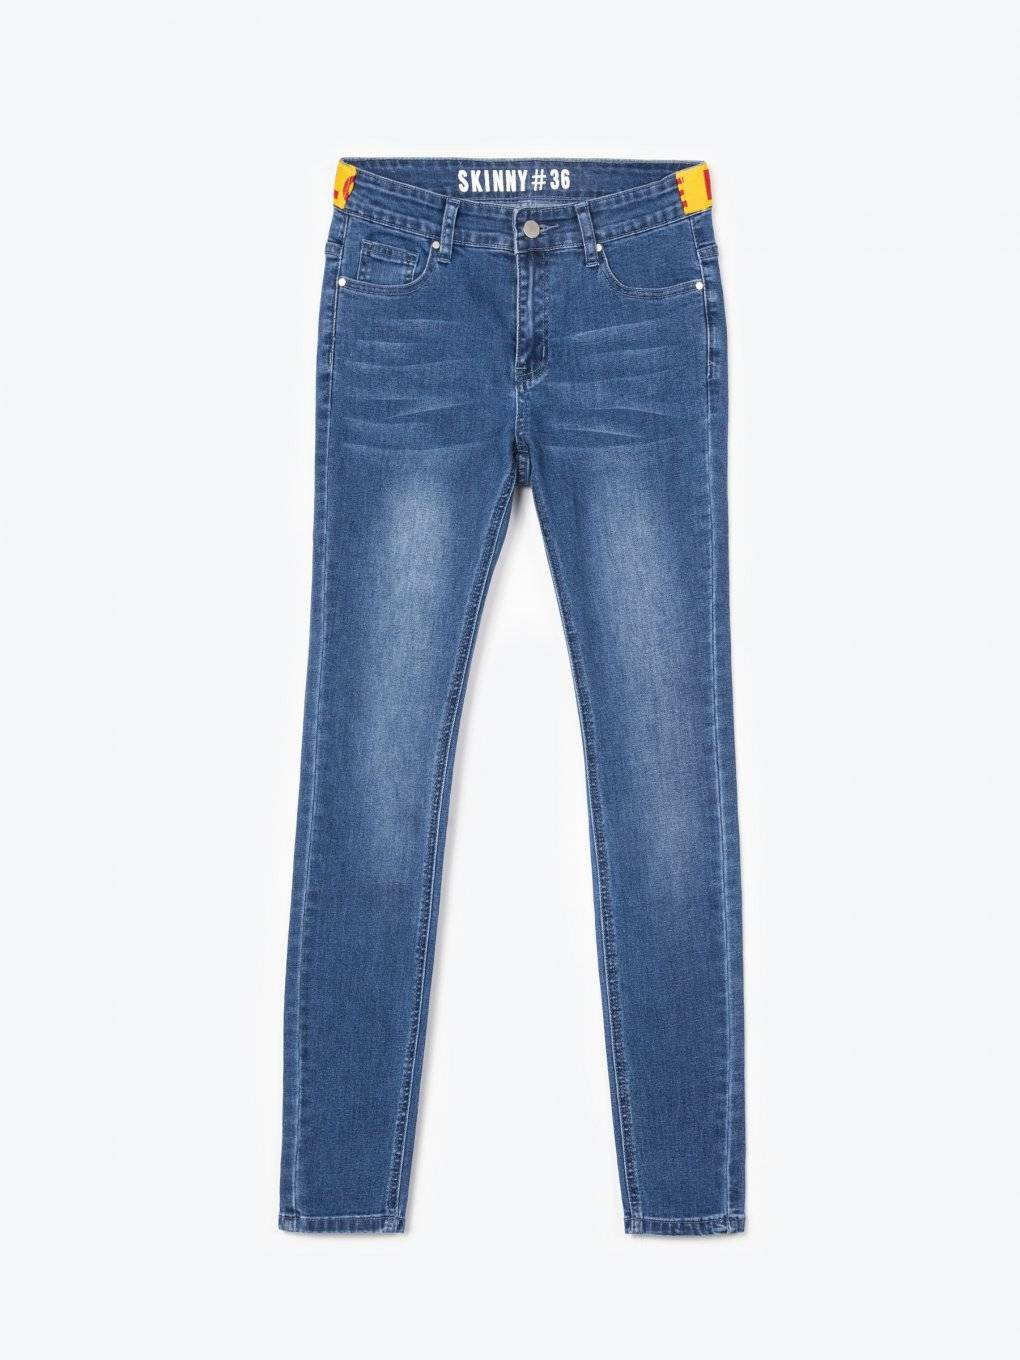 Skinny jeans with decorative tape on waist